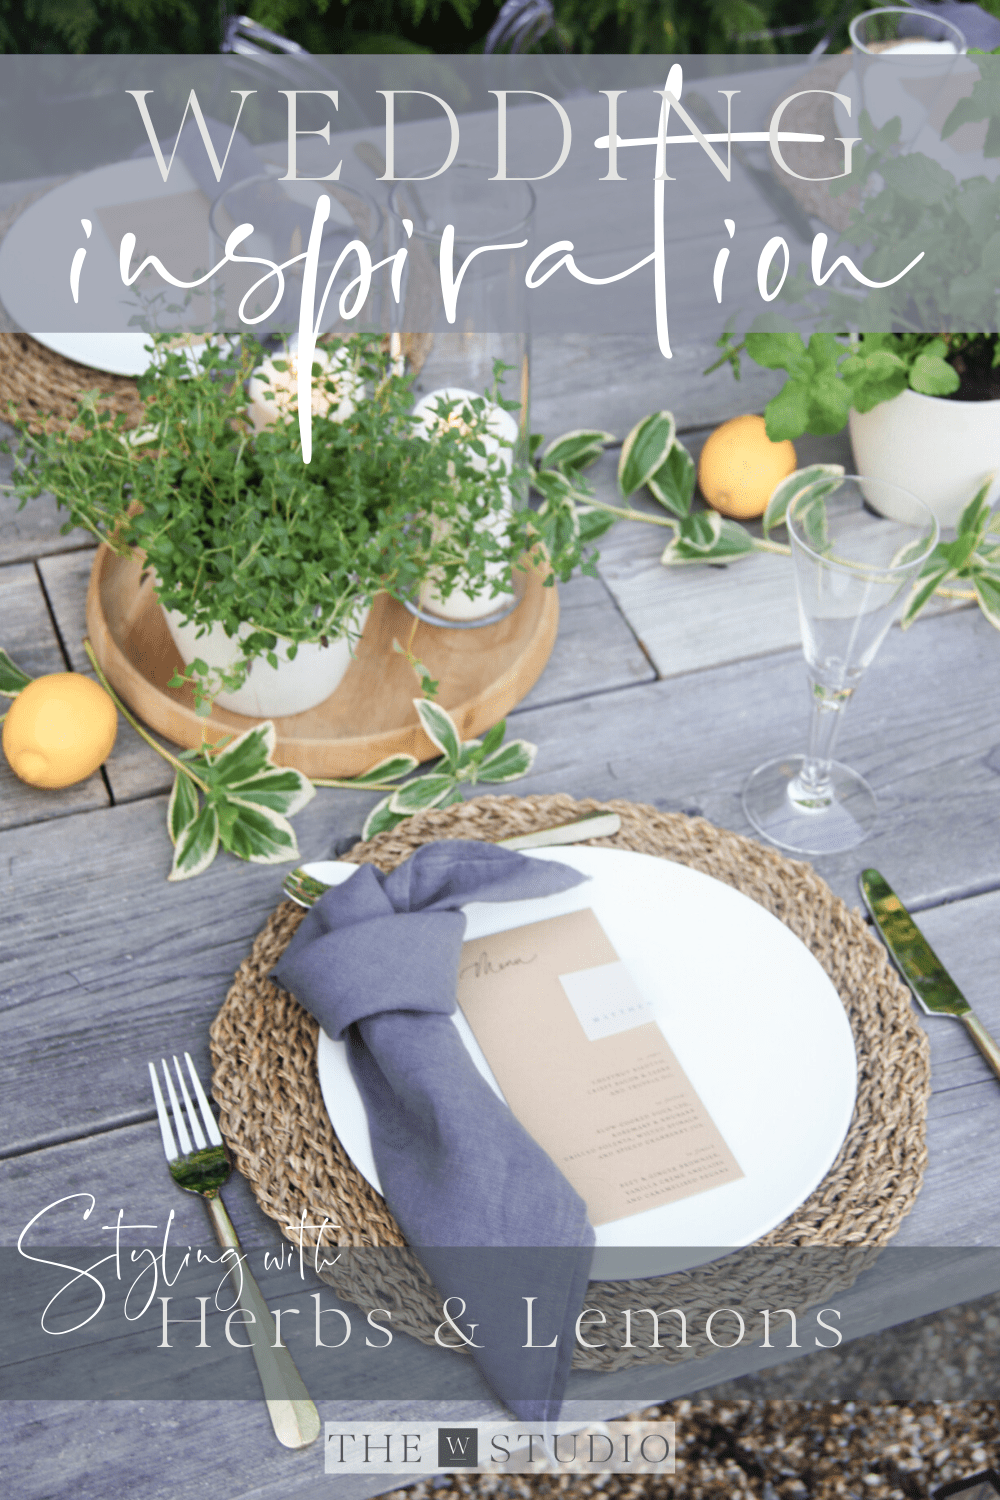 Wedding inspiration with herbs and lemons